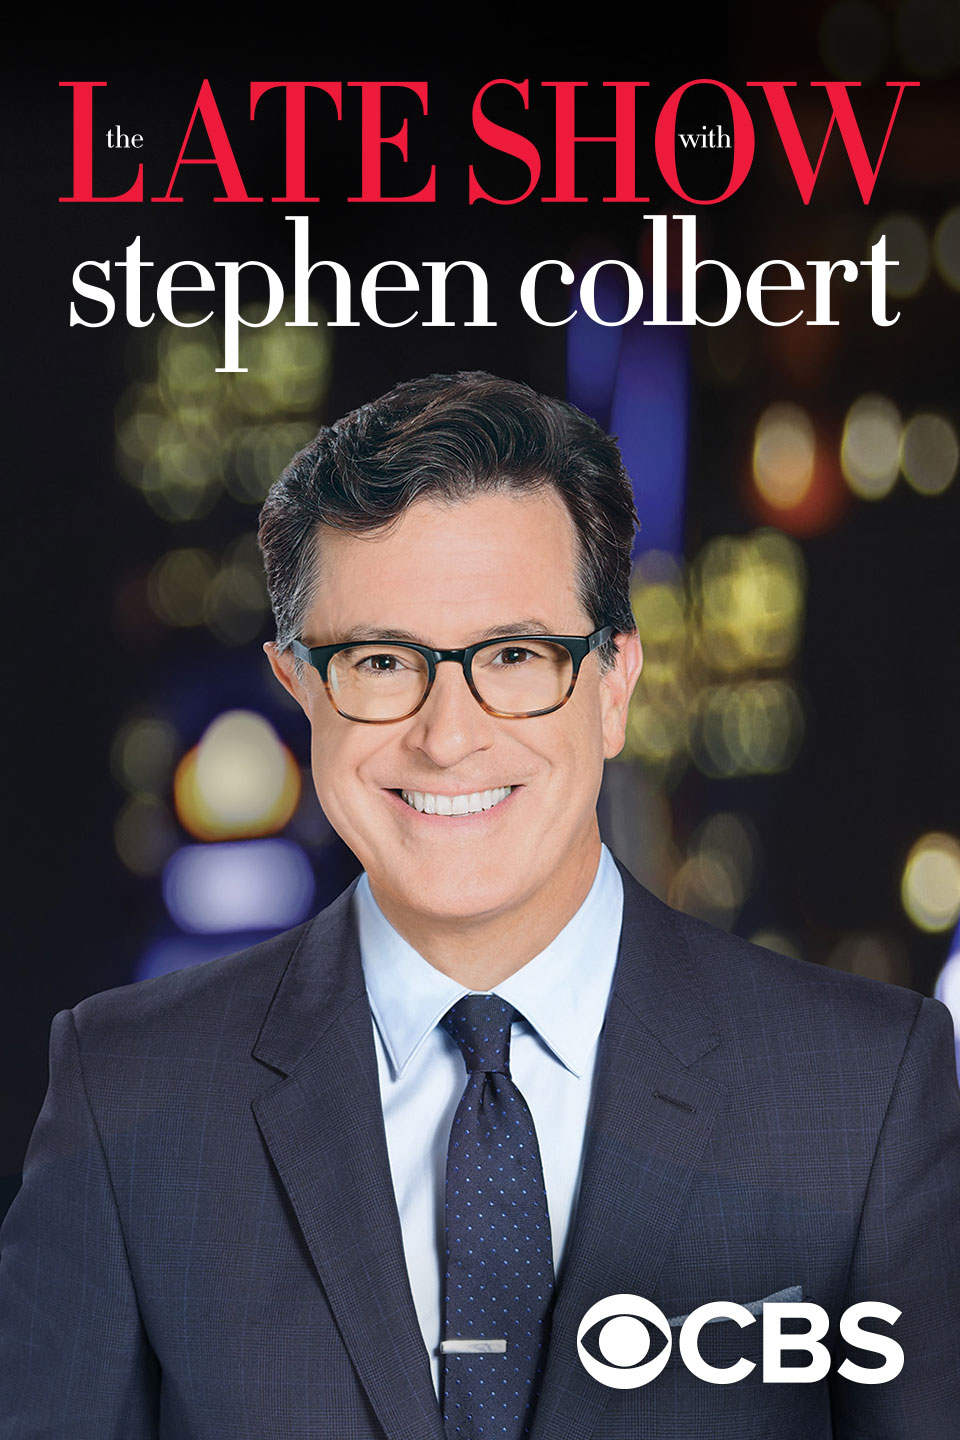 Late Show with Stephen Colbert - Season 7 Episode 16 - Colin Firth, Stanley Tucci, Adrianne Lenker